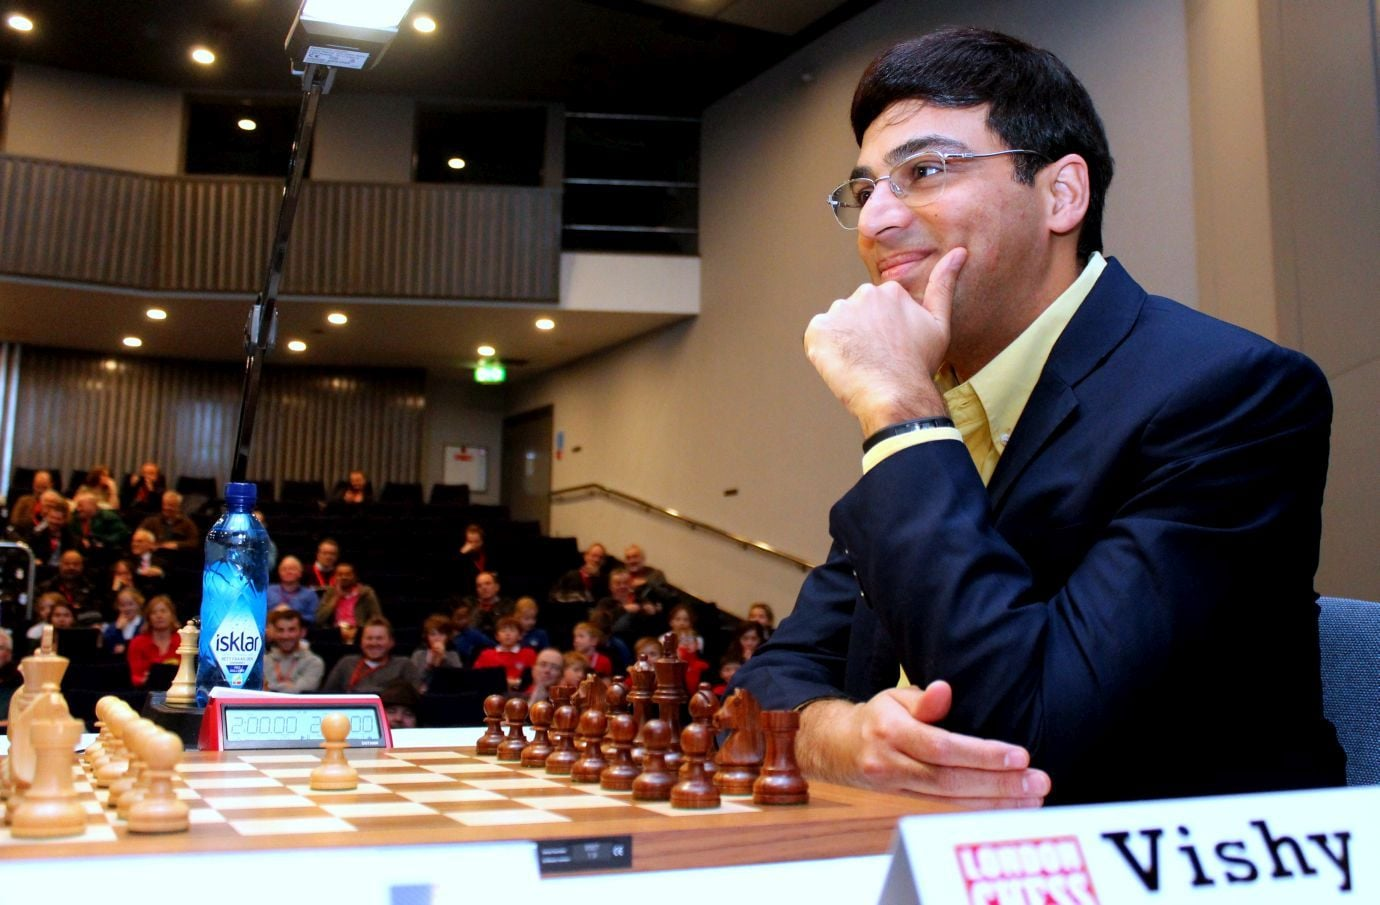 Anand has been celebrating his birthday at the London Chess Classic since 2010. On 11 December 2016 he will turn 47. (Image courtesy Amruta Mokal)